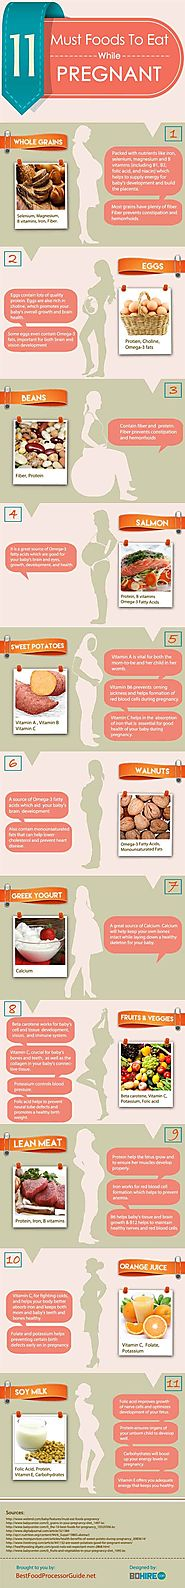 Foods to Eat While Pregnant